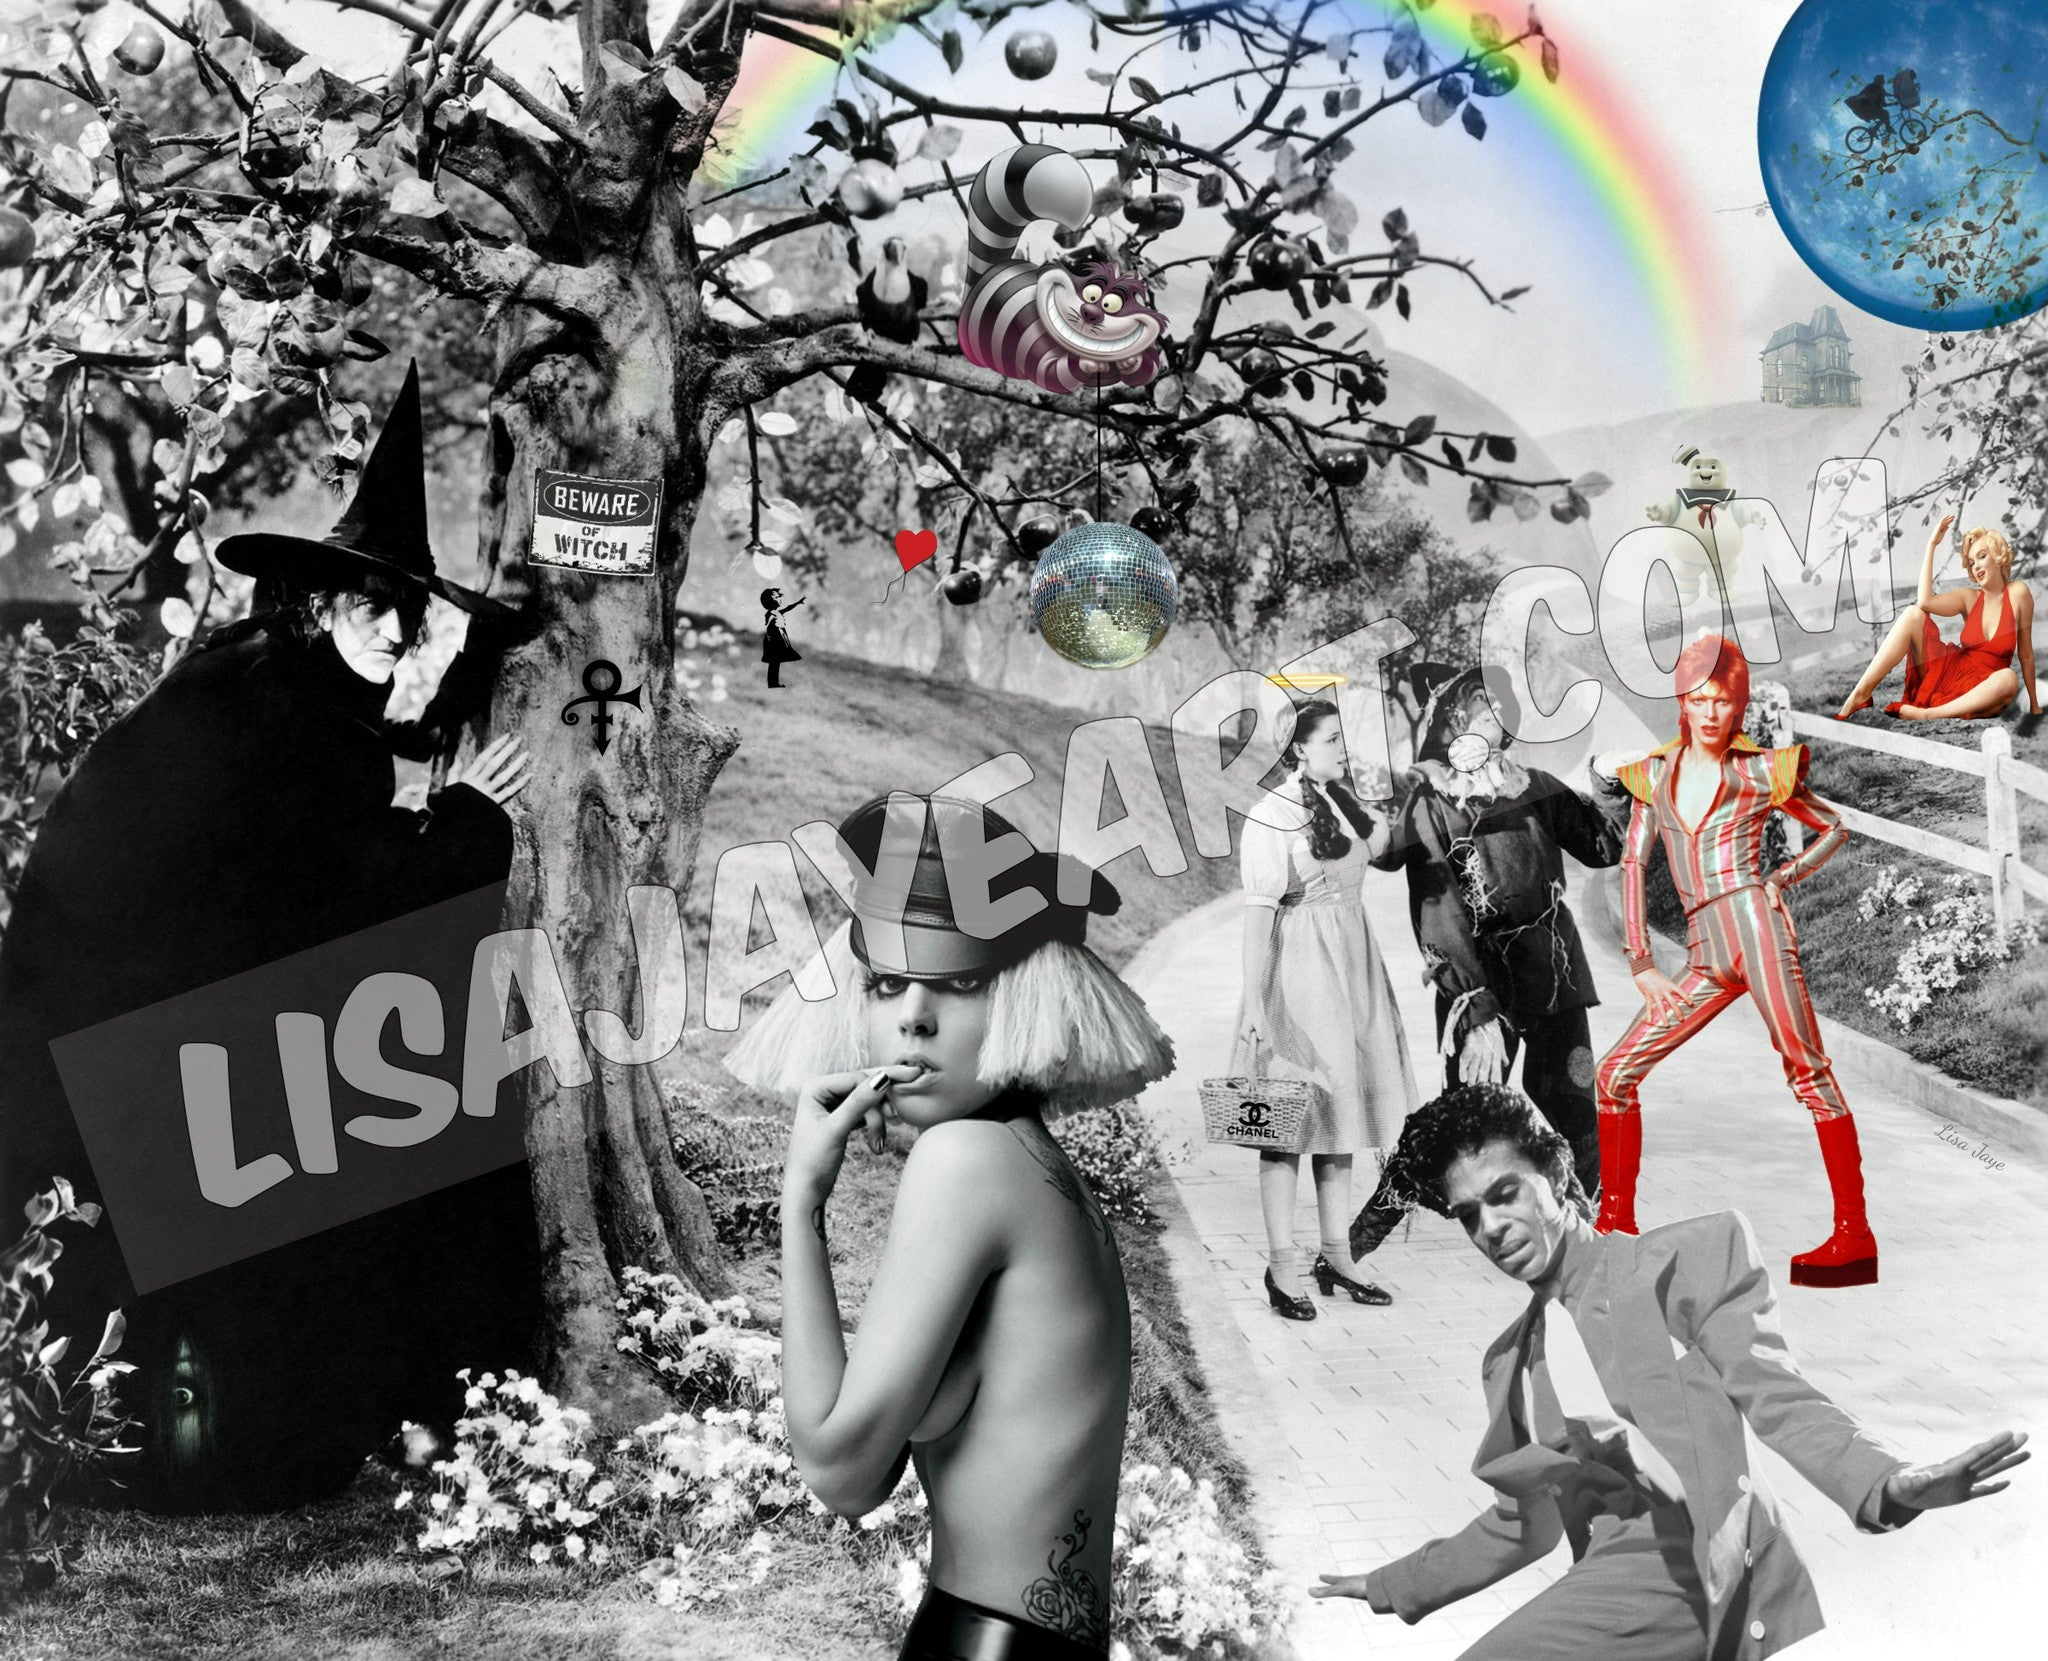 Pop Culture Wizard of Oz, Lady Gaga, Prince, David Bowie, Wall Art